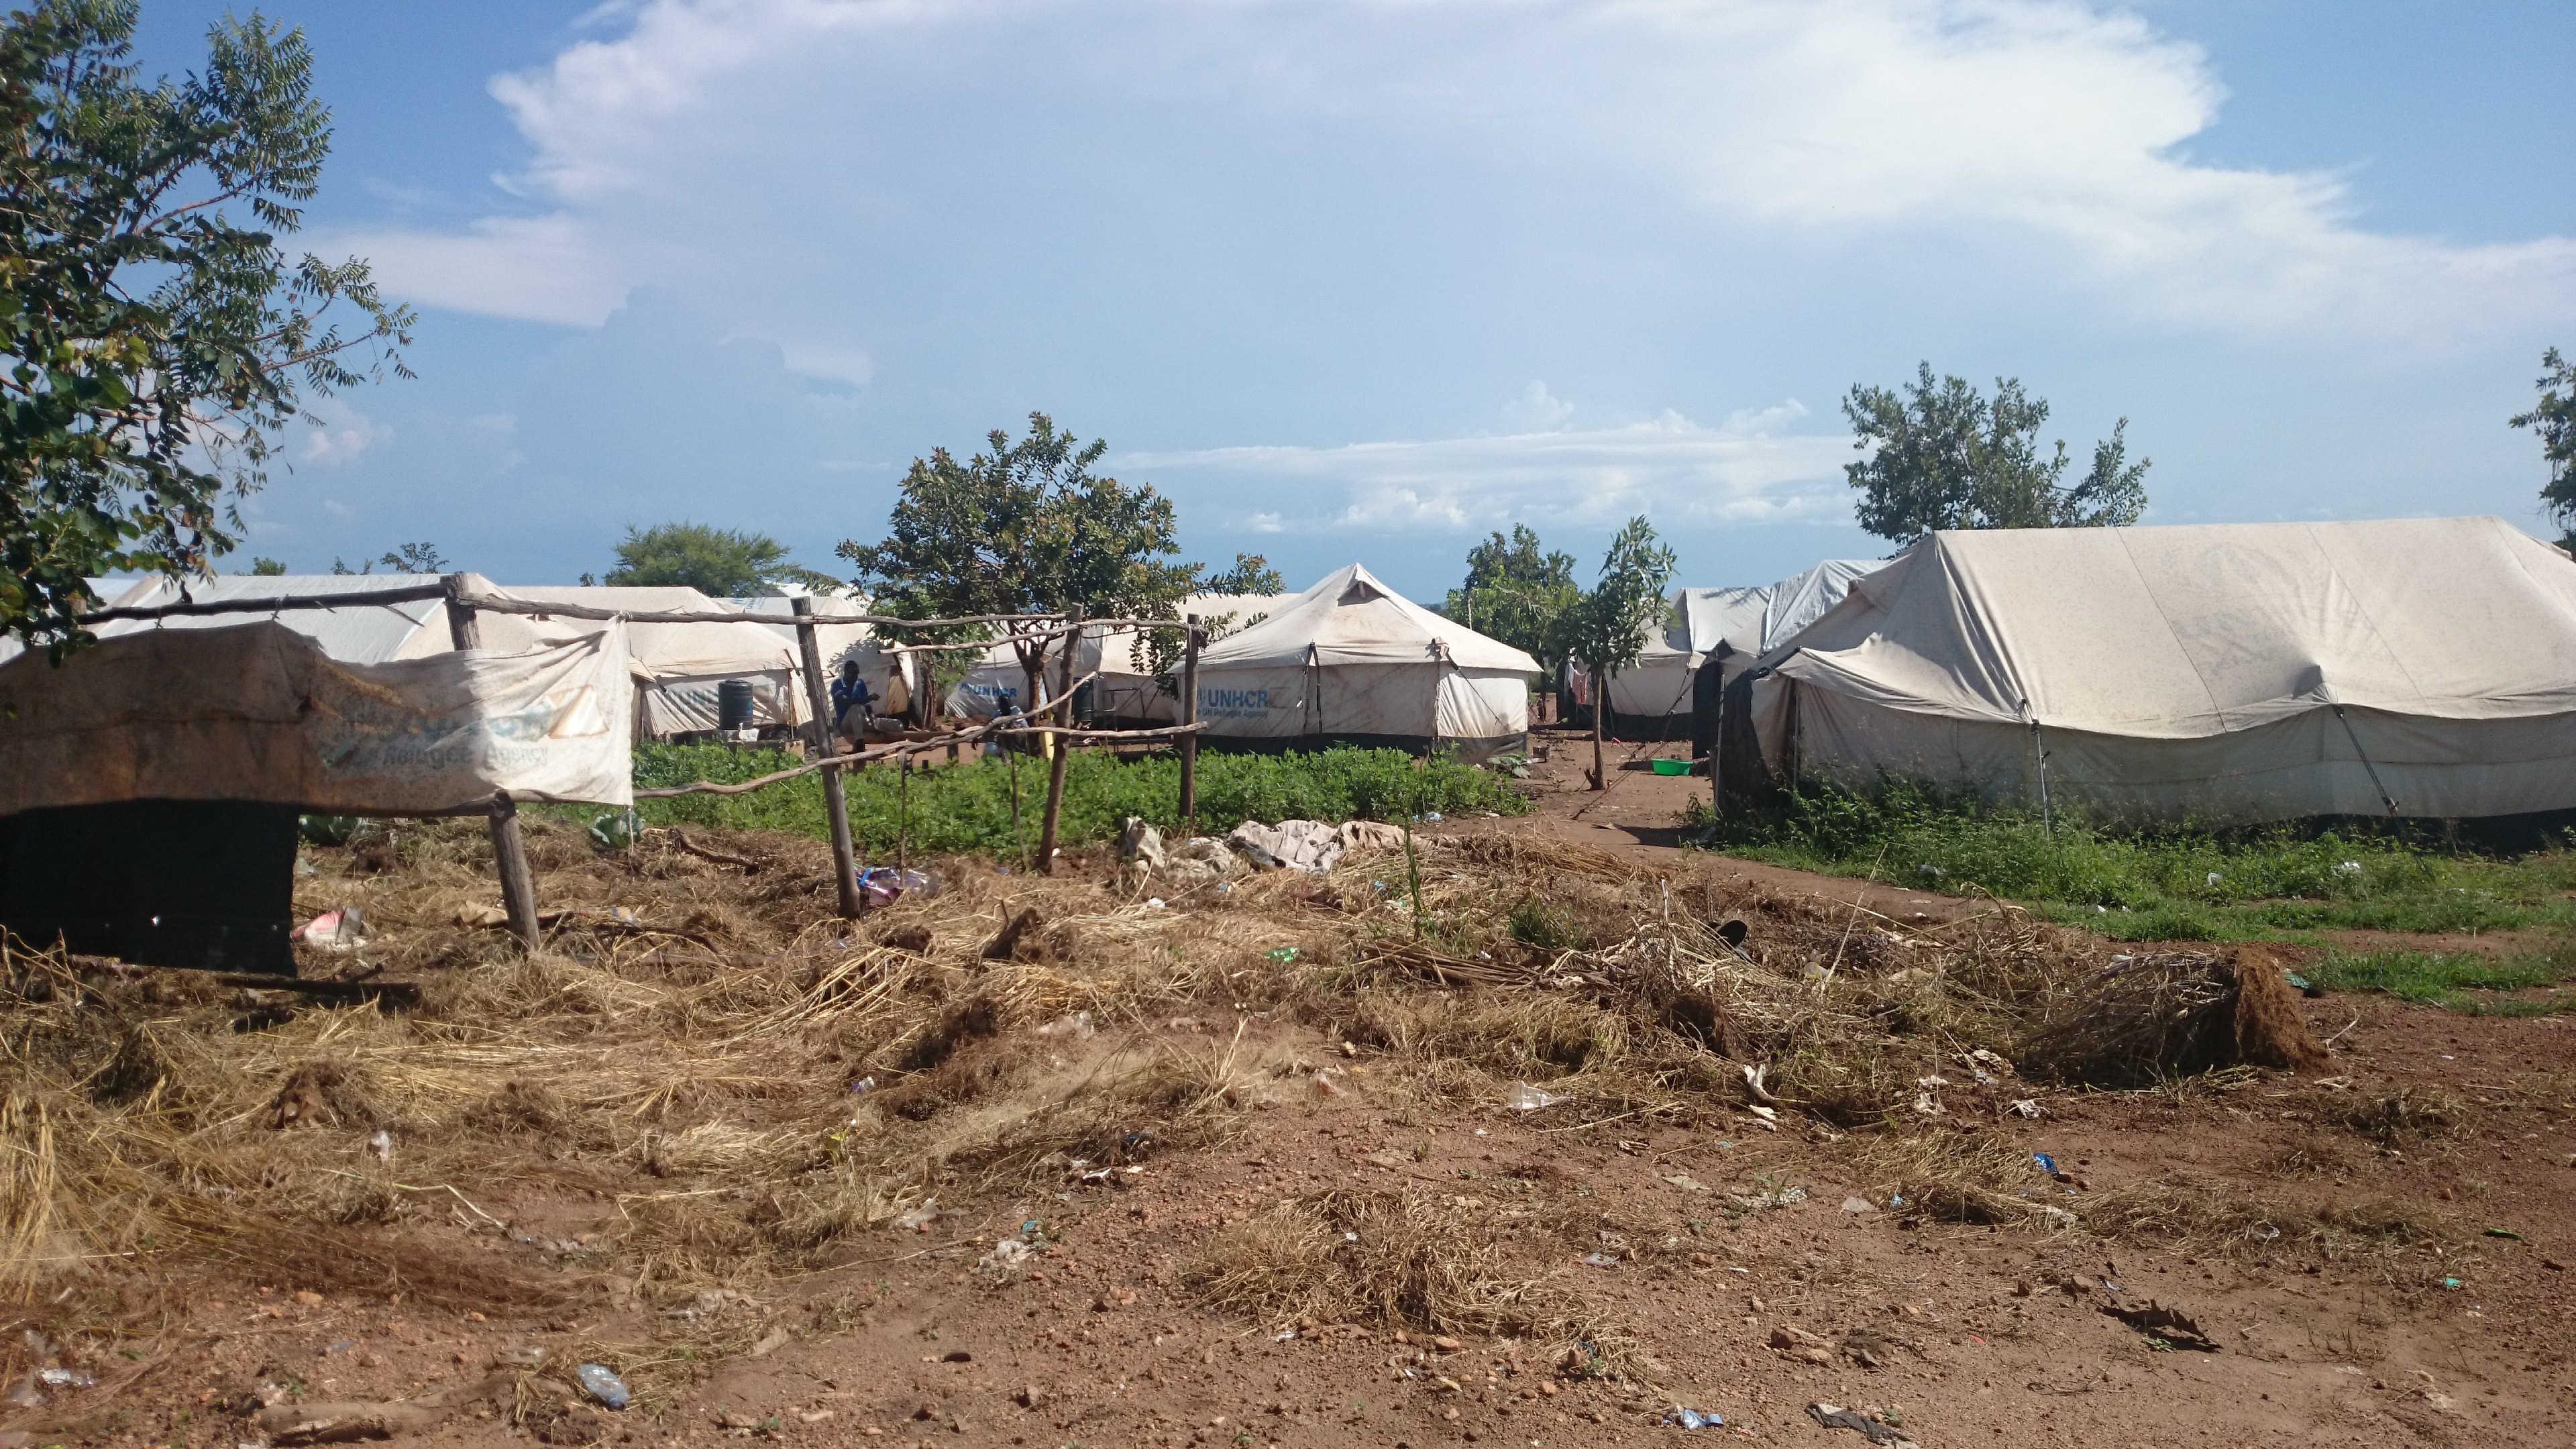 BidiBidi - The World's Largest Refugee Camp, South Sudan and Northern Uganda